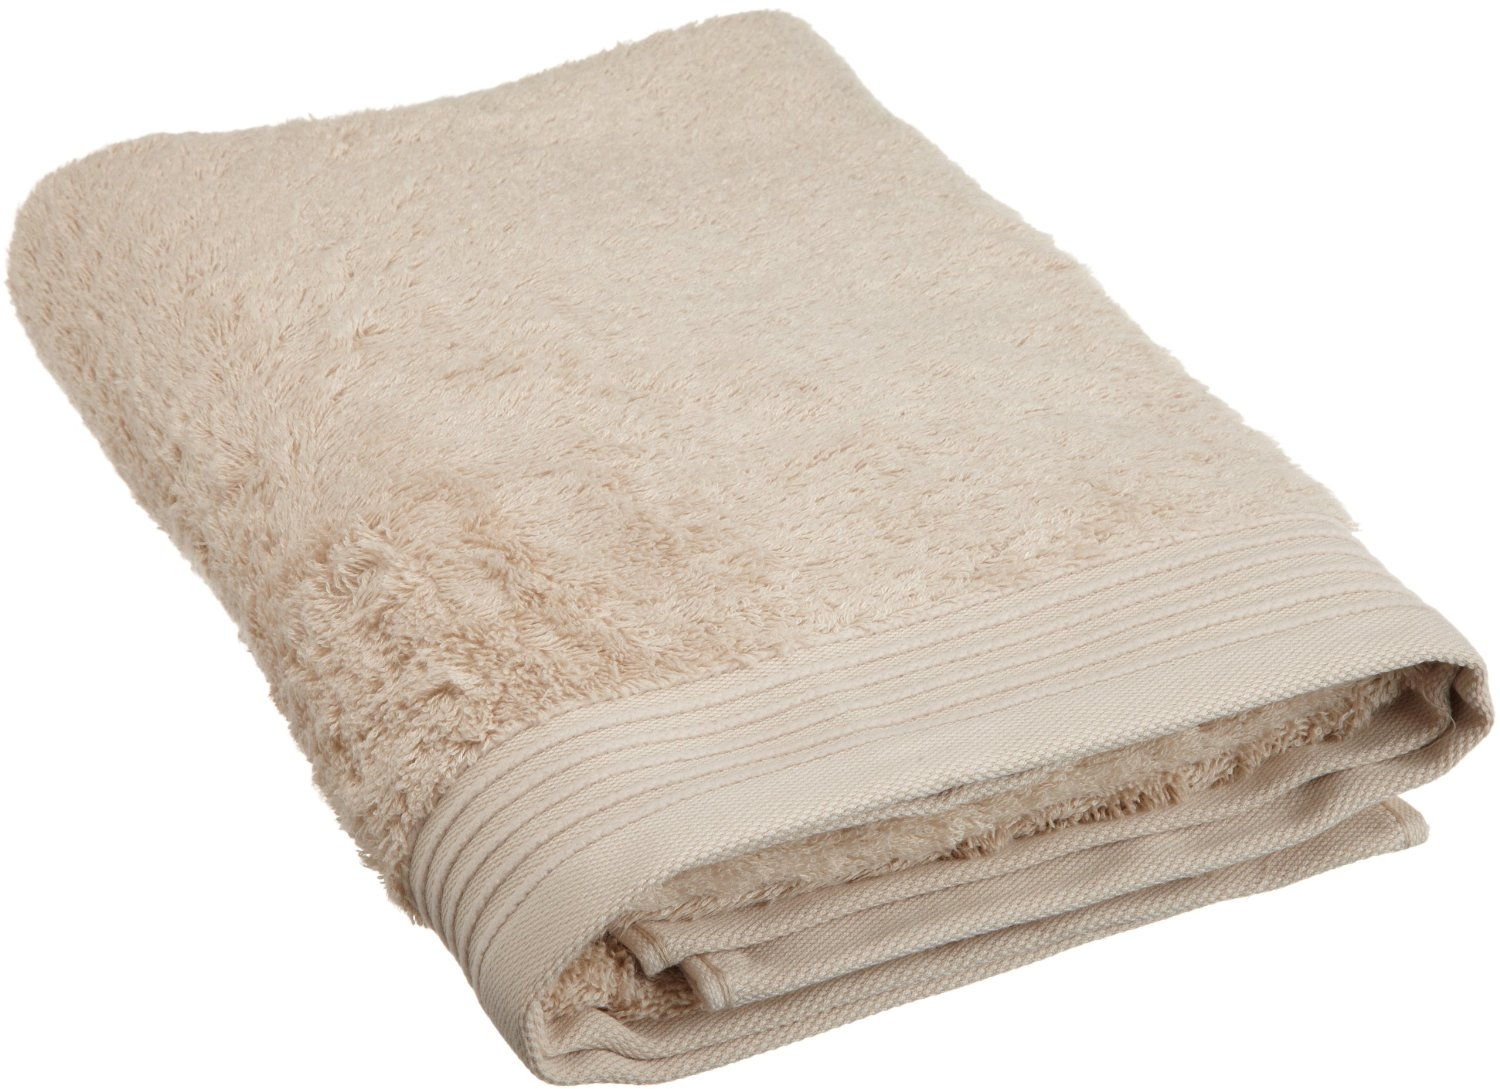 Peacock Alley Bamboo Bath Towel Wheat 31 2 You Save 7 80